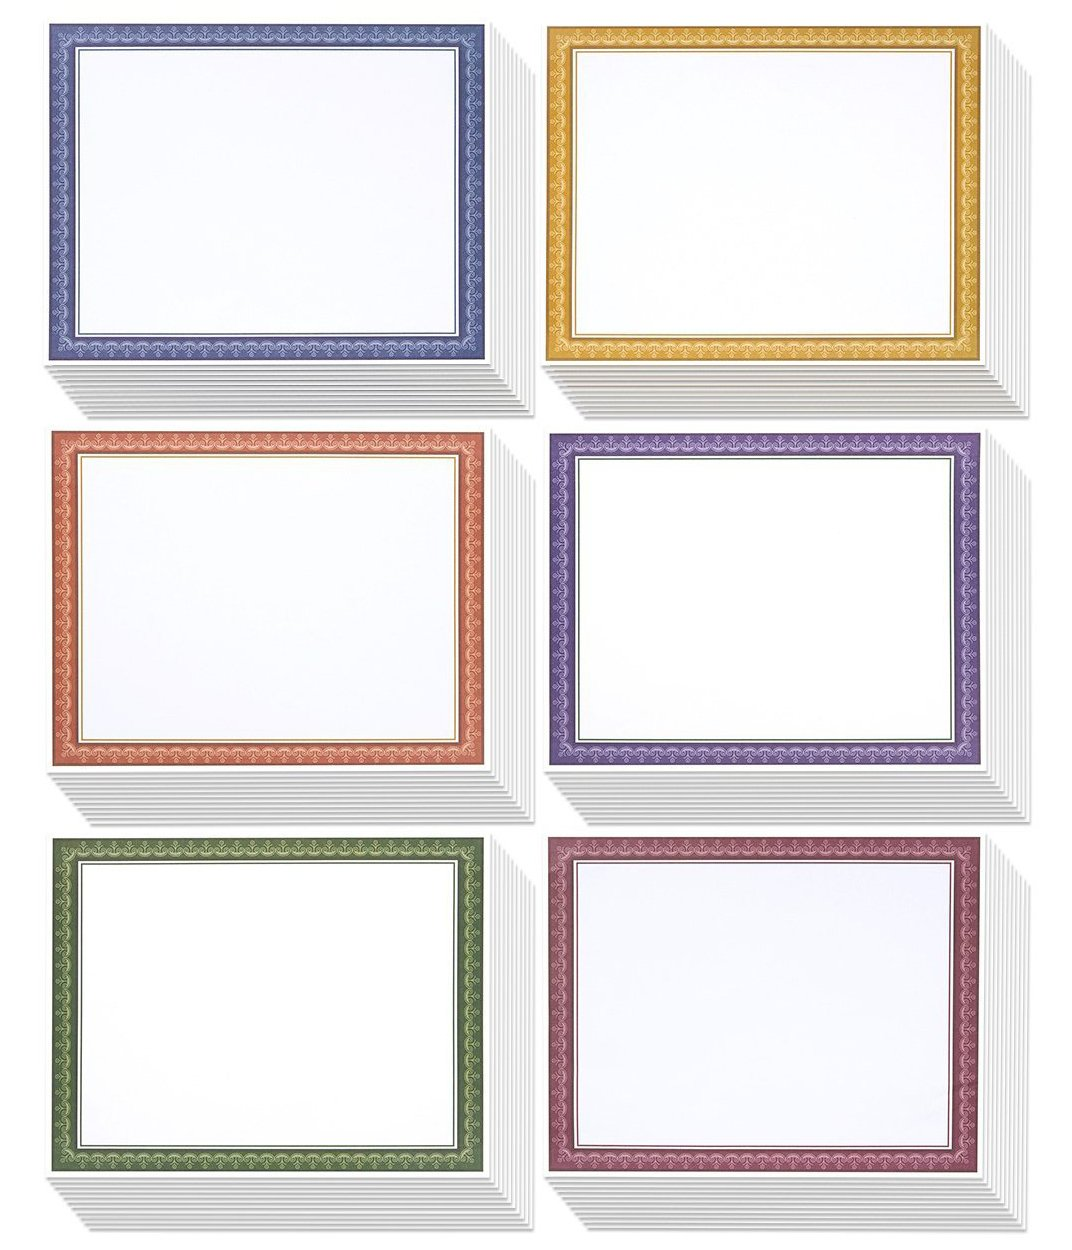 96 Pack Certificate Papers - 6 Different Assorted Colors, Gold, Amethyst, Rose, Blue, Copper and Emerald - Award Certificate Paper, Blank Certificates, Diploma Paper, Printer Friendly, 8.5 x 11 Inches